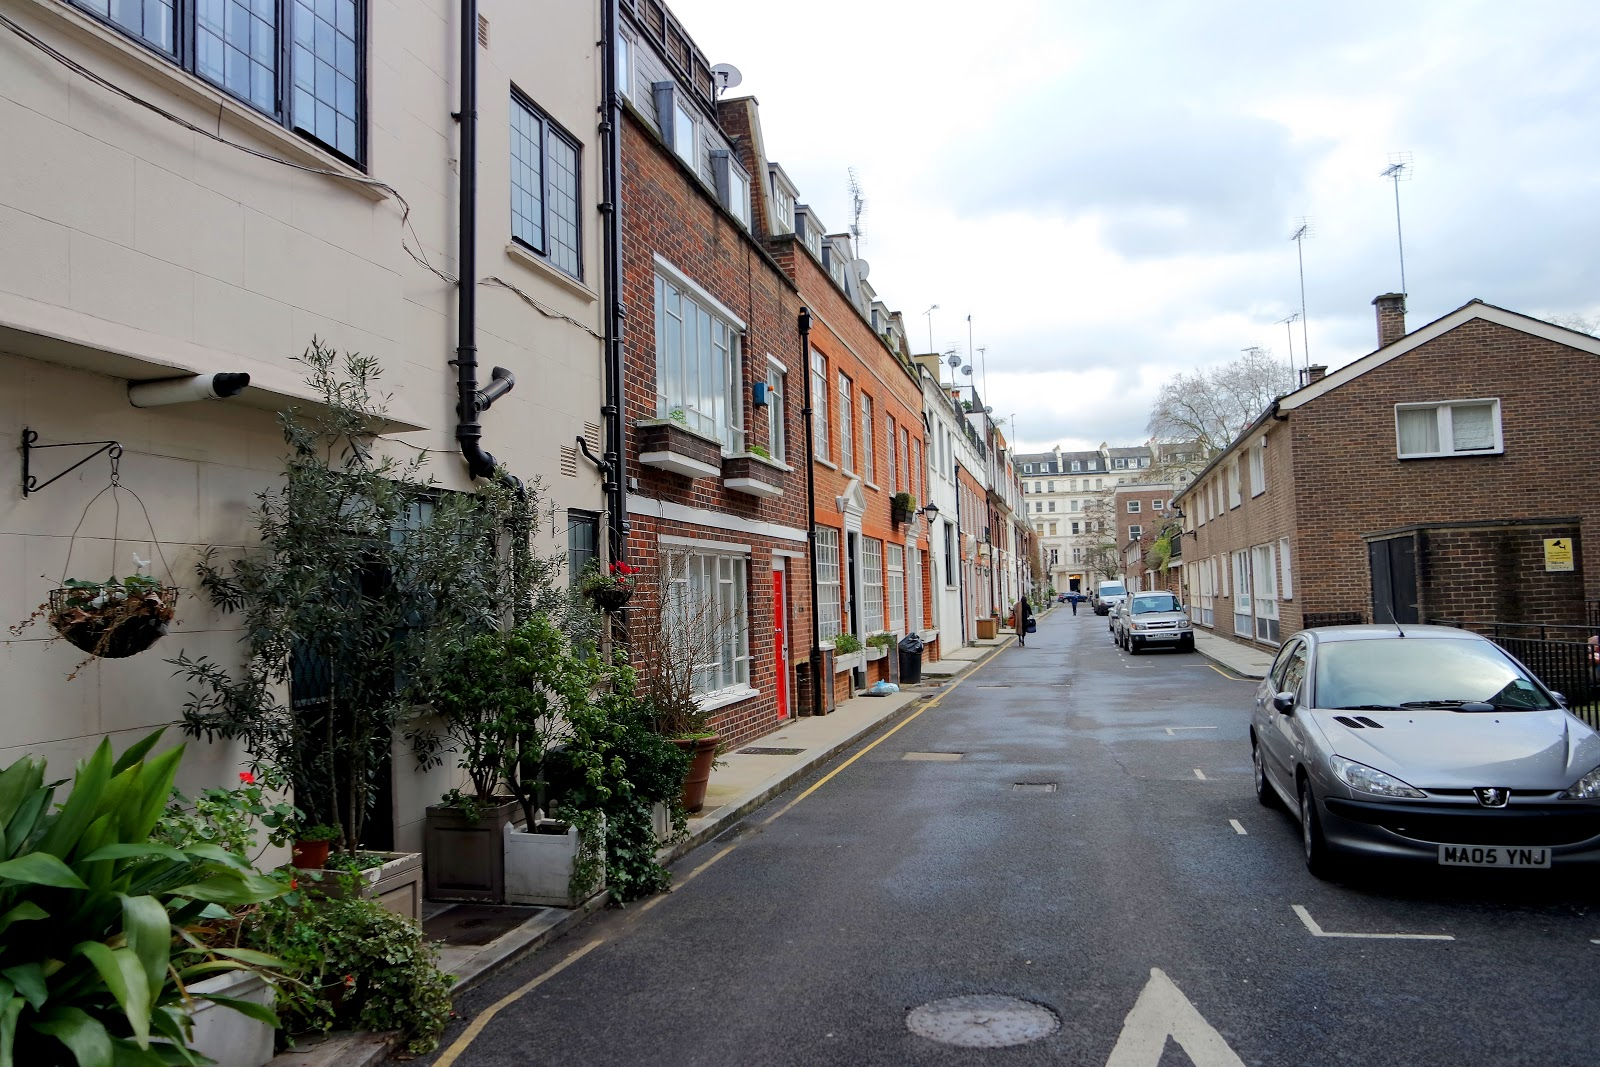 Stanhope Mews E, Queens gate, South Kensington, London, Londres, vlog, blog, travel, travelling, london streets, french,